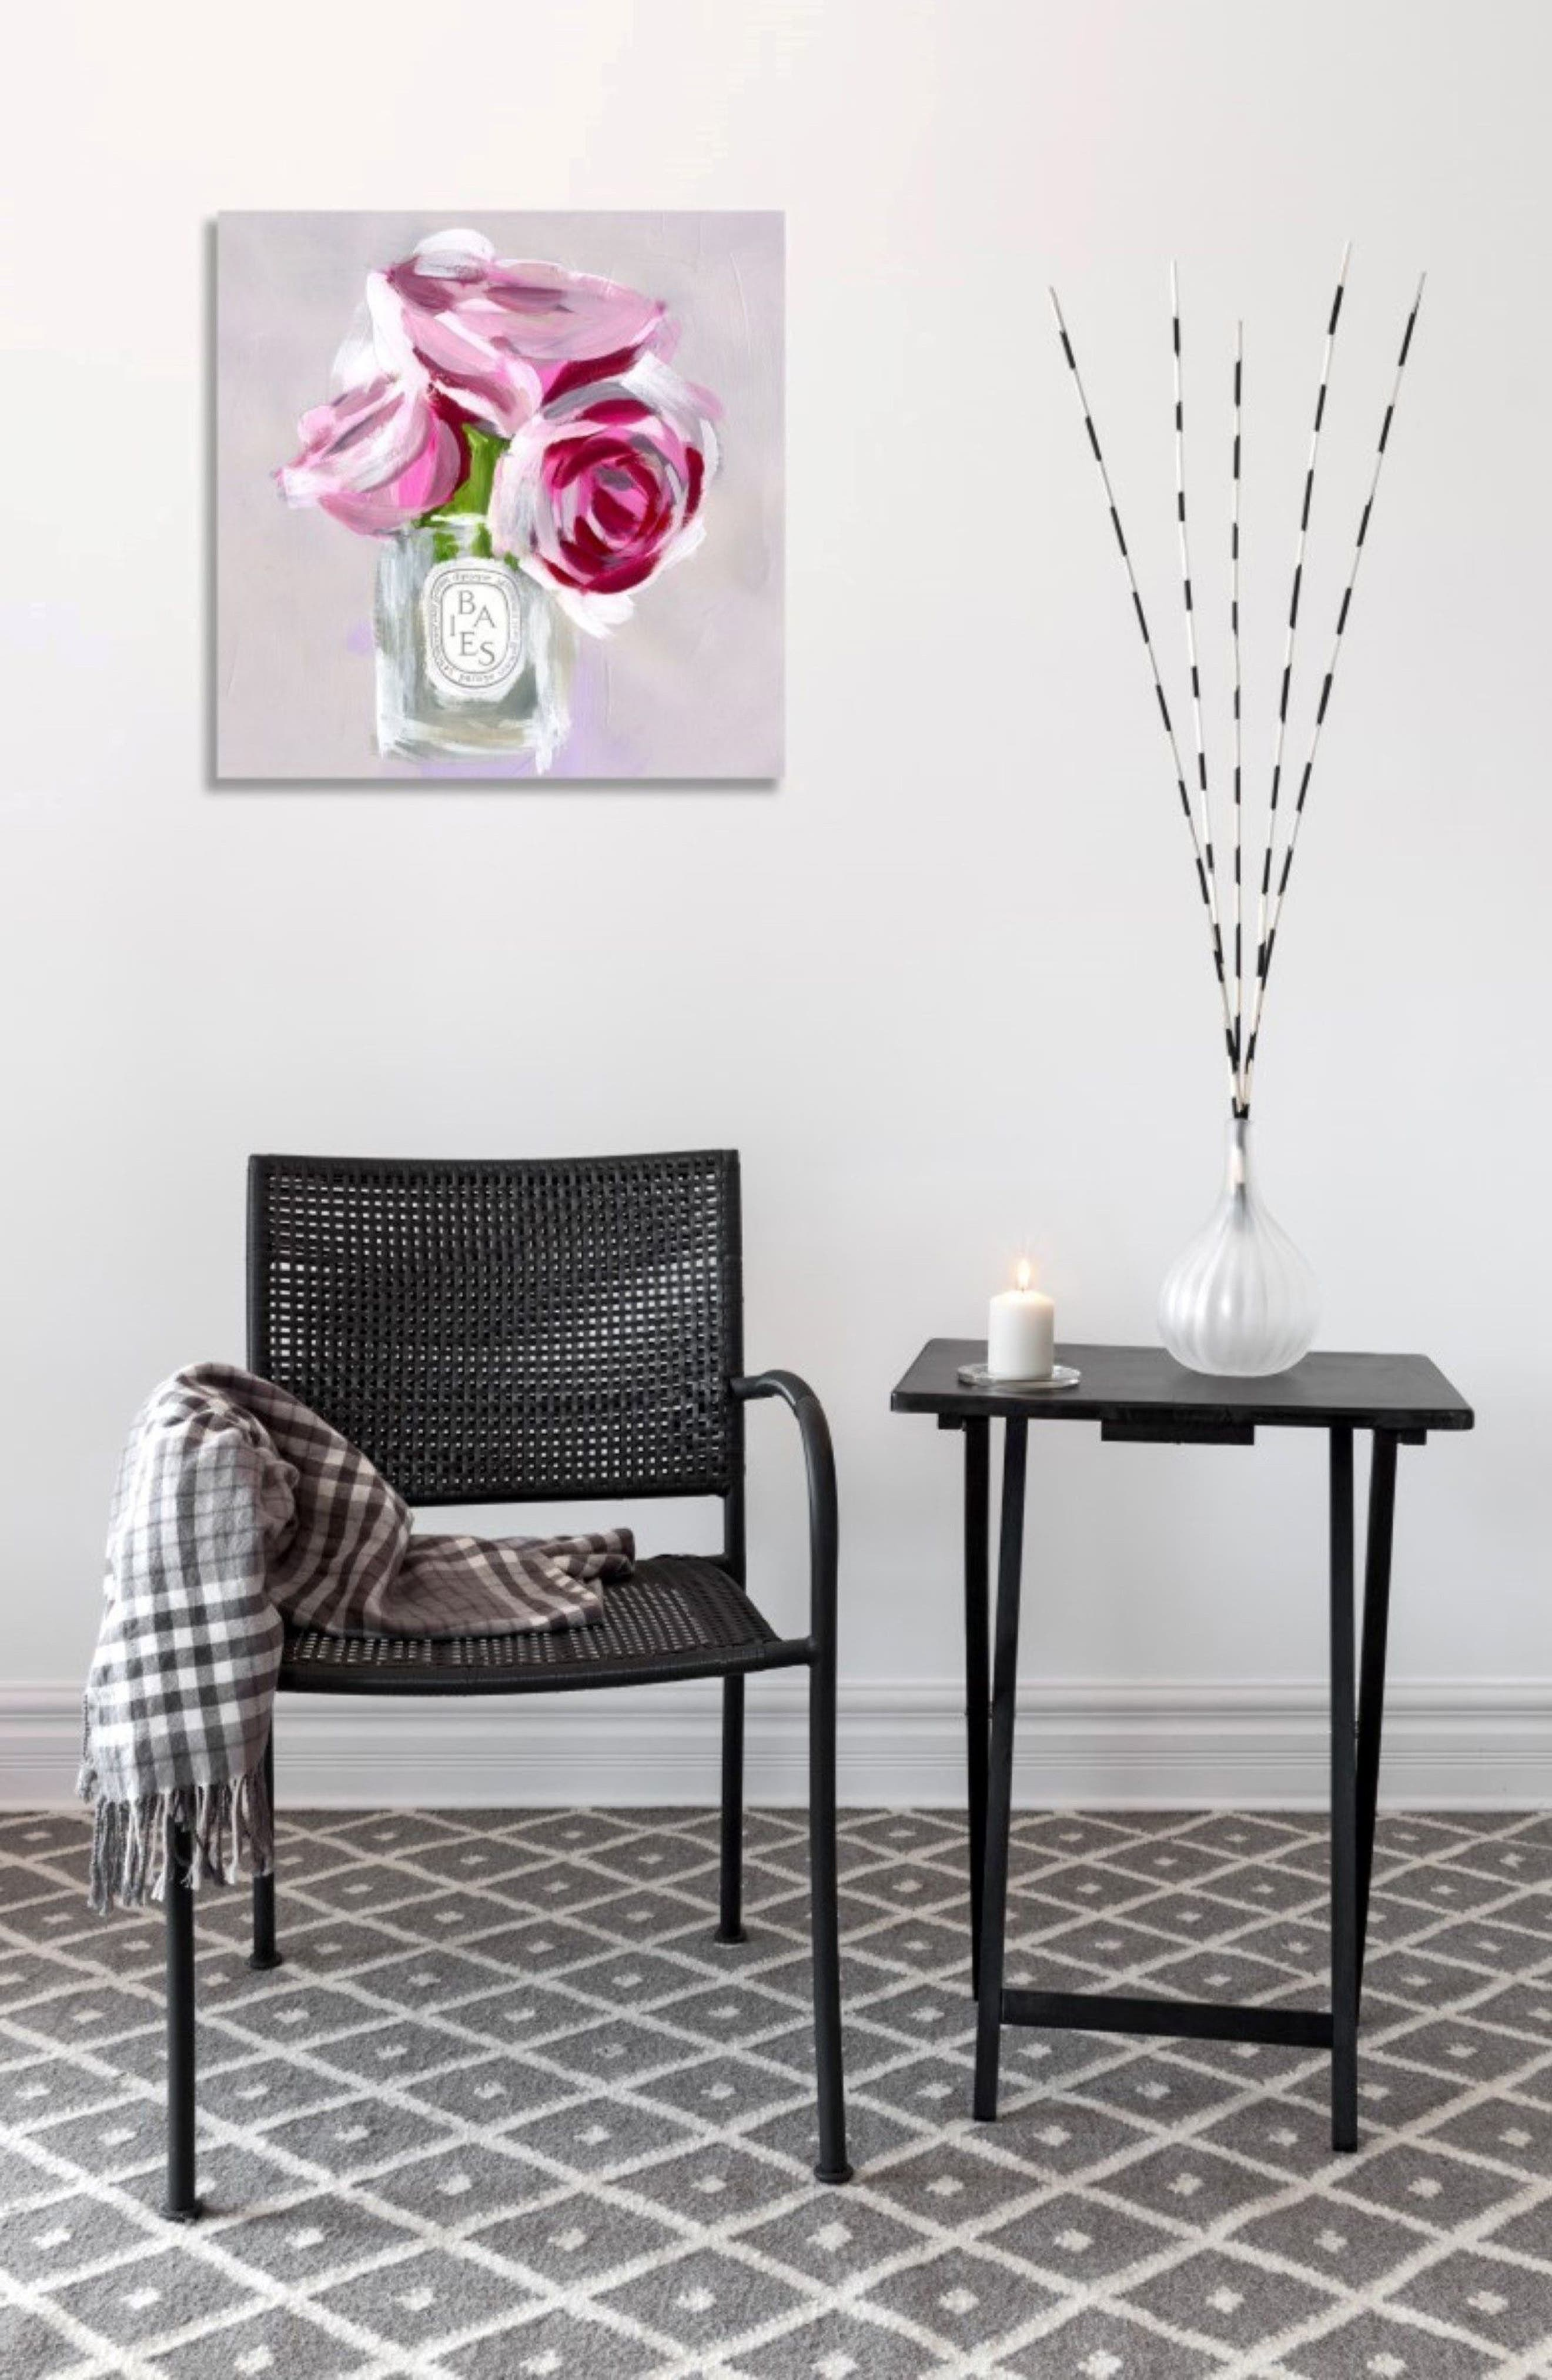 'Rose Candle' Canvas Wall Art,                             Alternate thumbnail 3, color,                             020